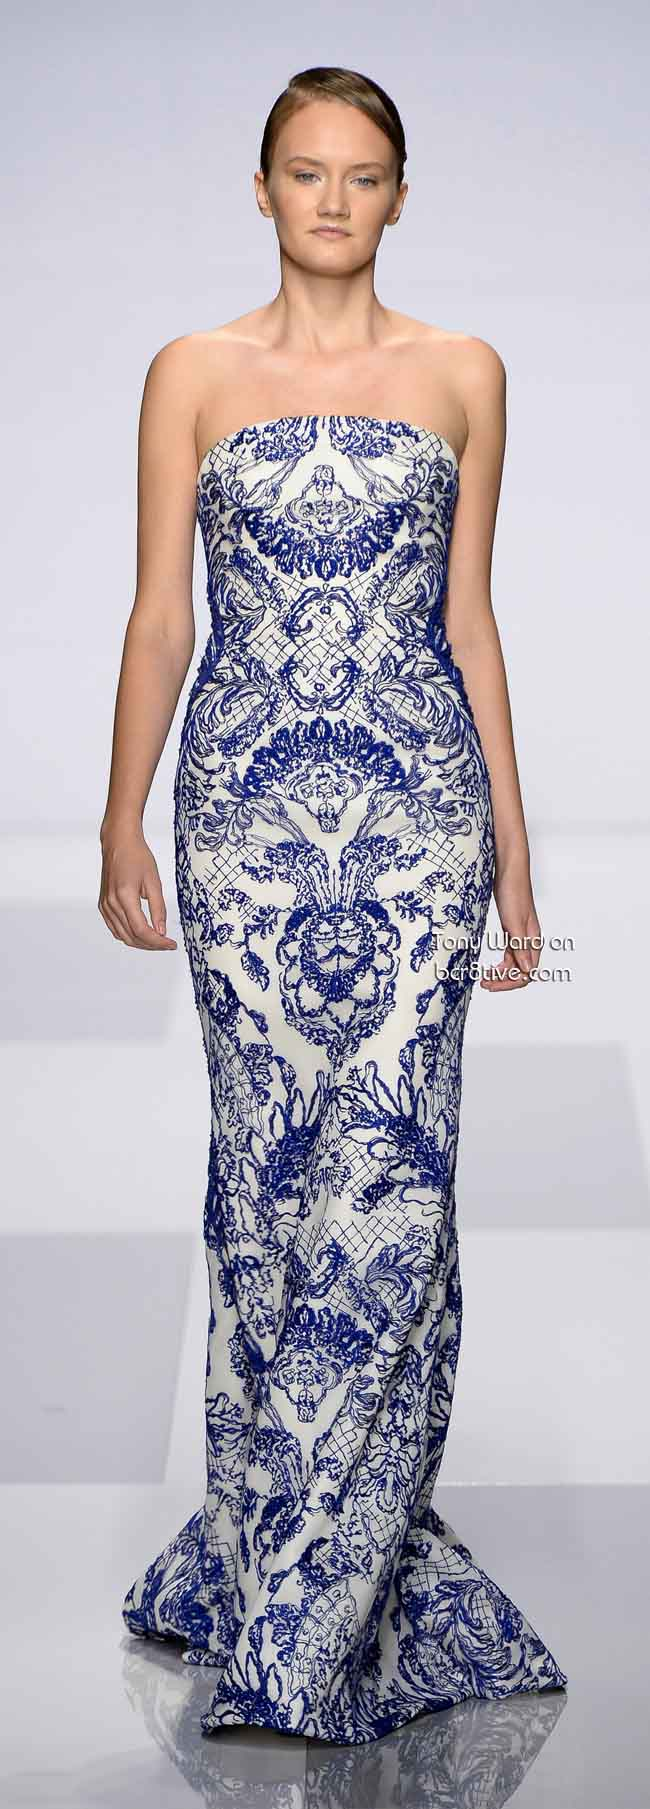 Tony Ward Couture Fall Winter 2013-14